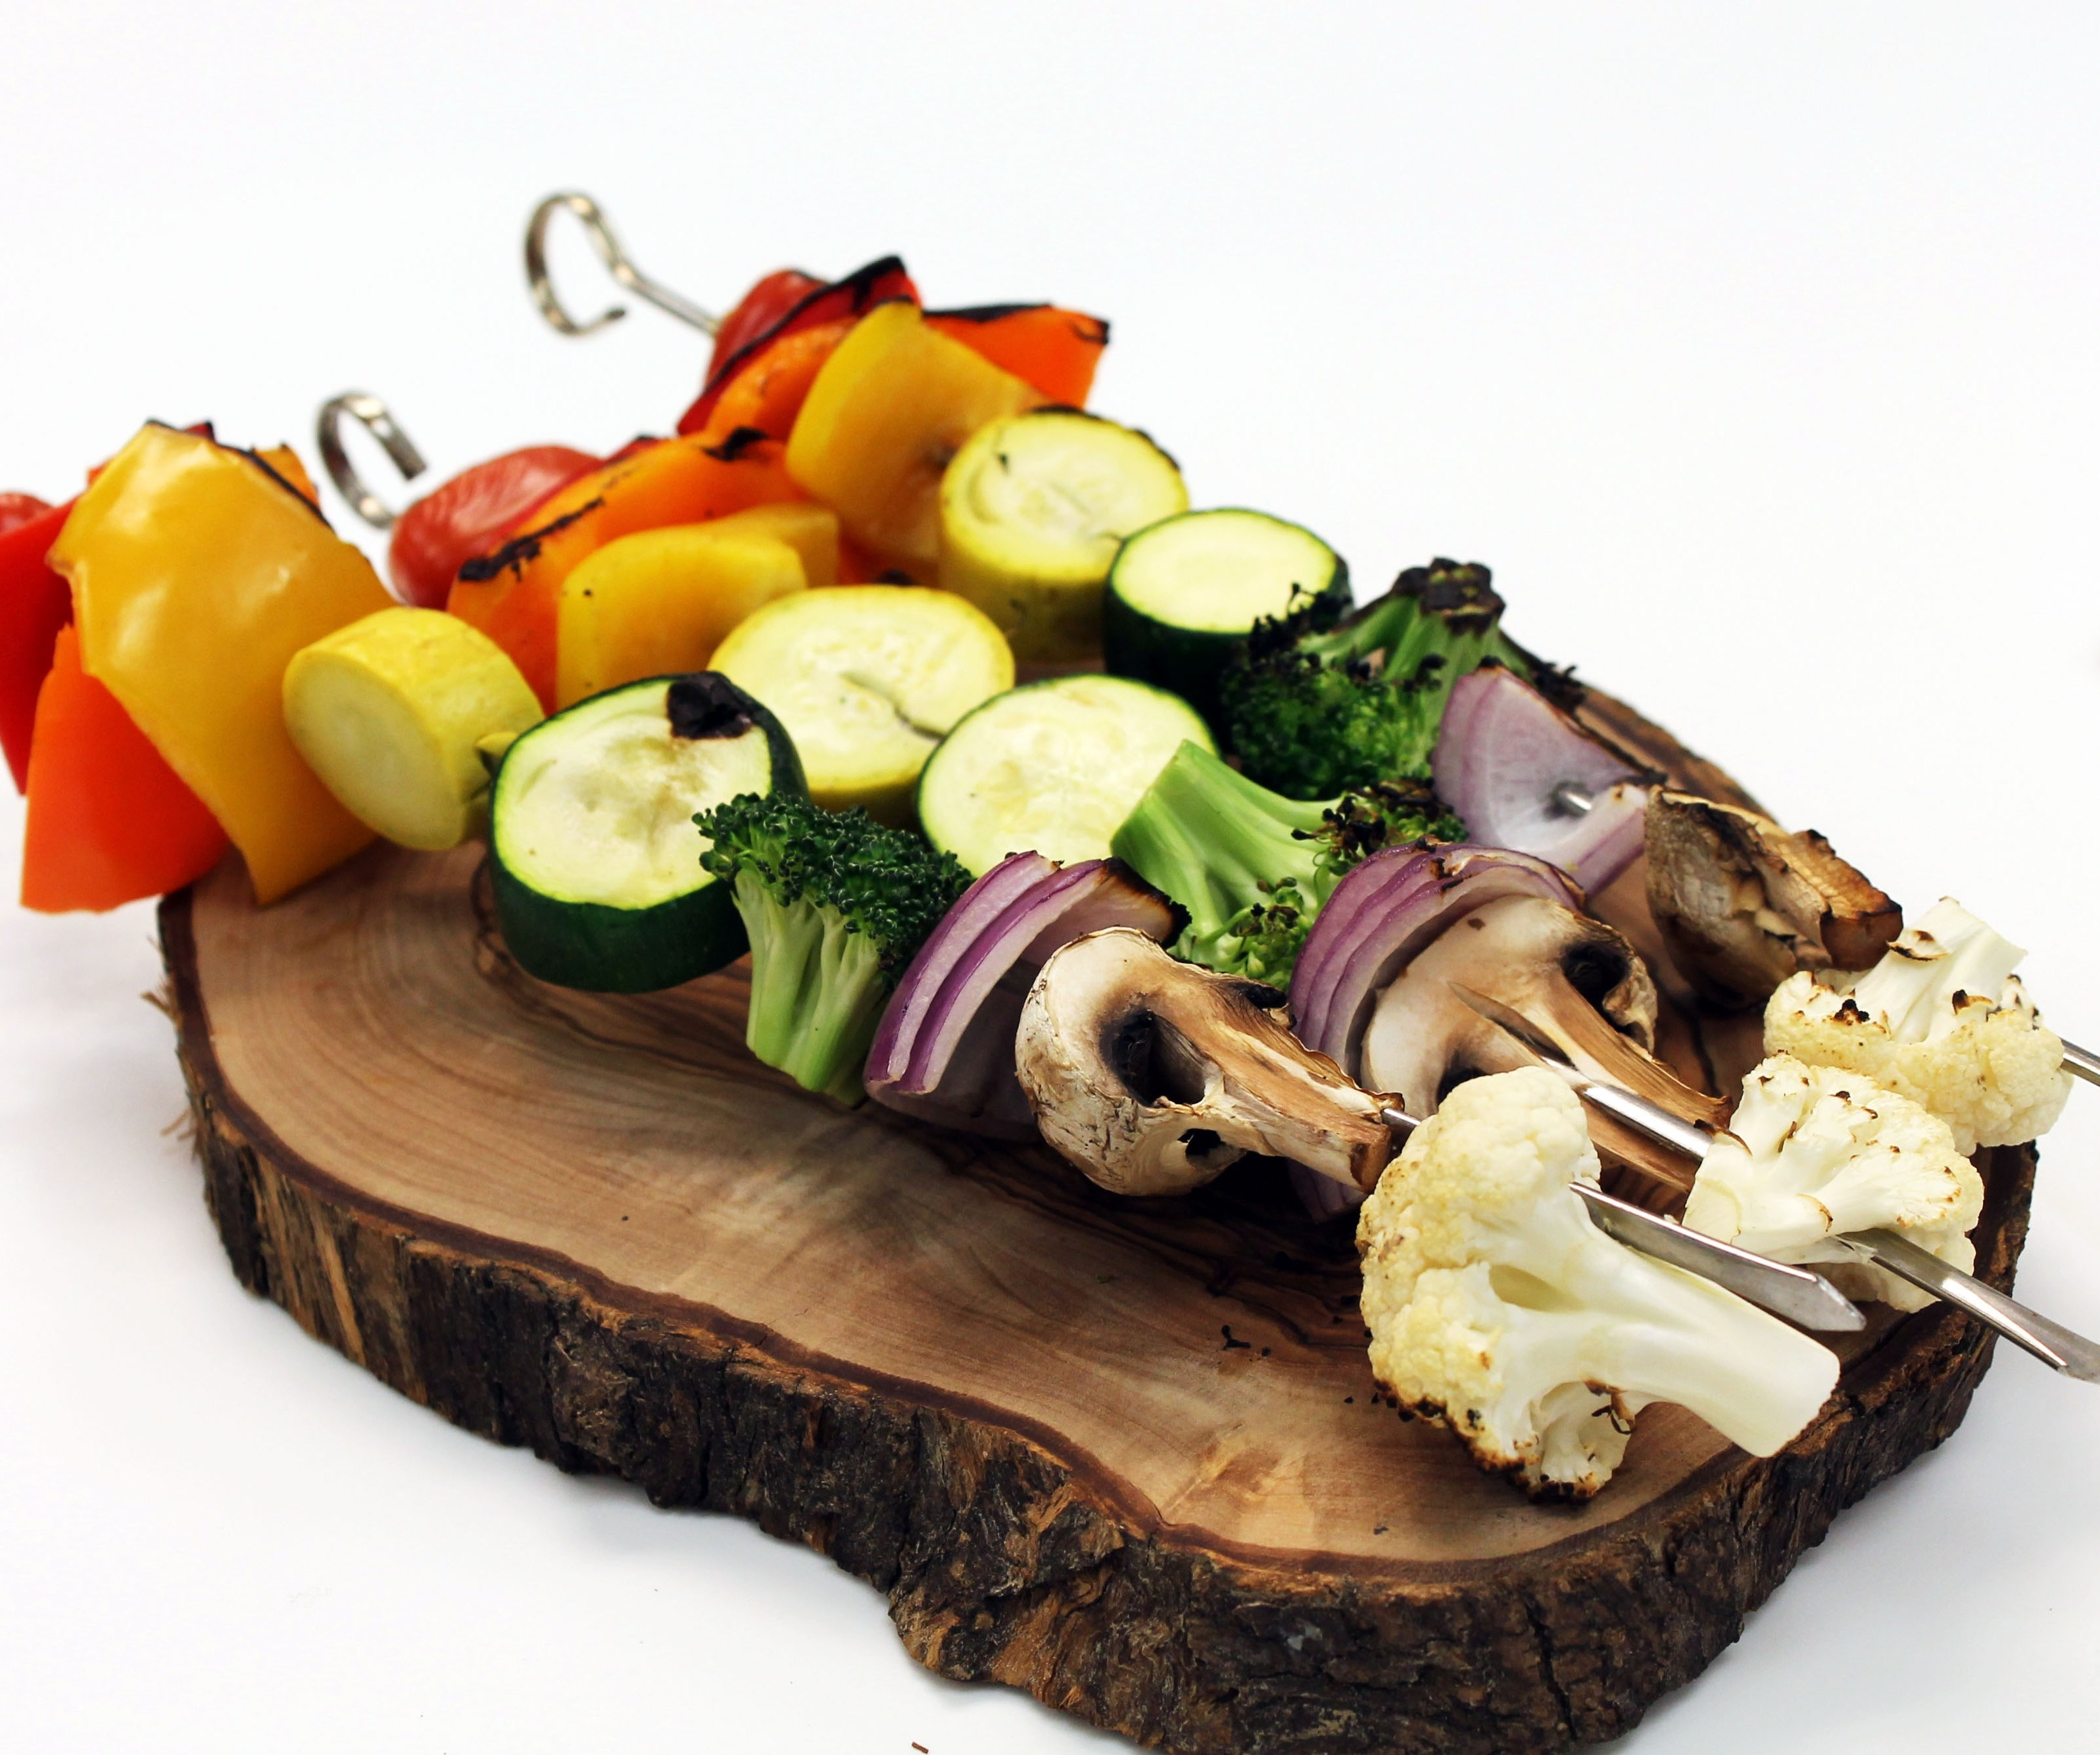 Grilled vegetable skewers on a decorative wooded plate.